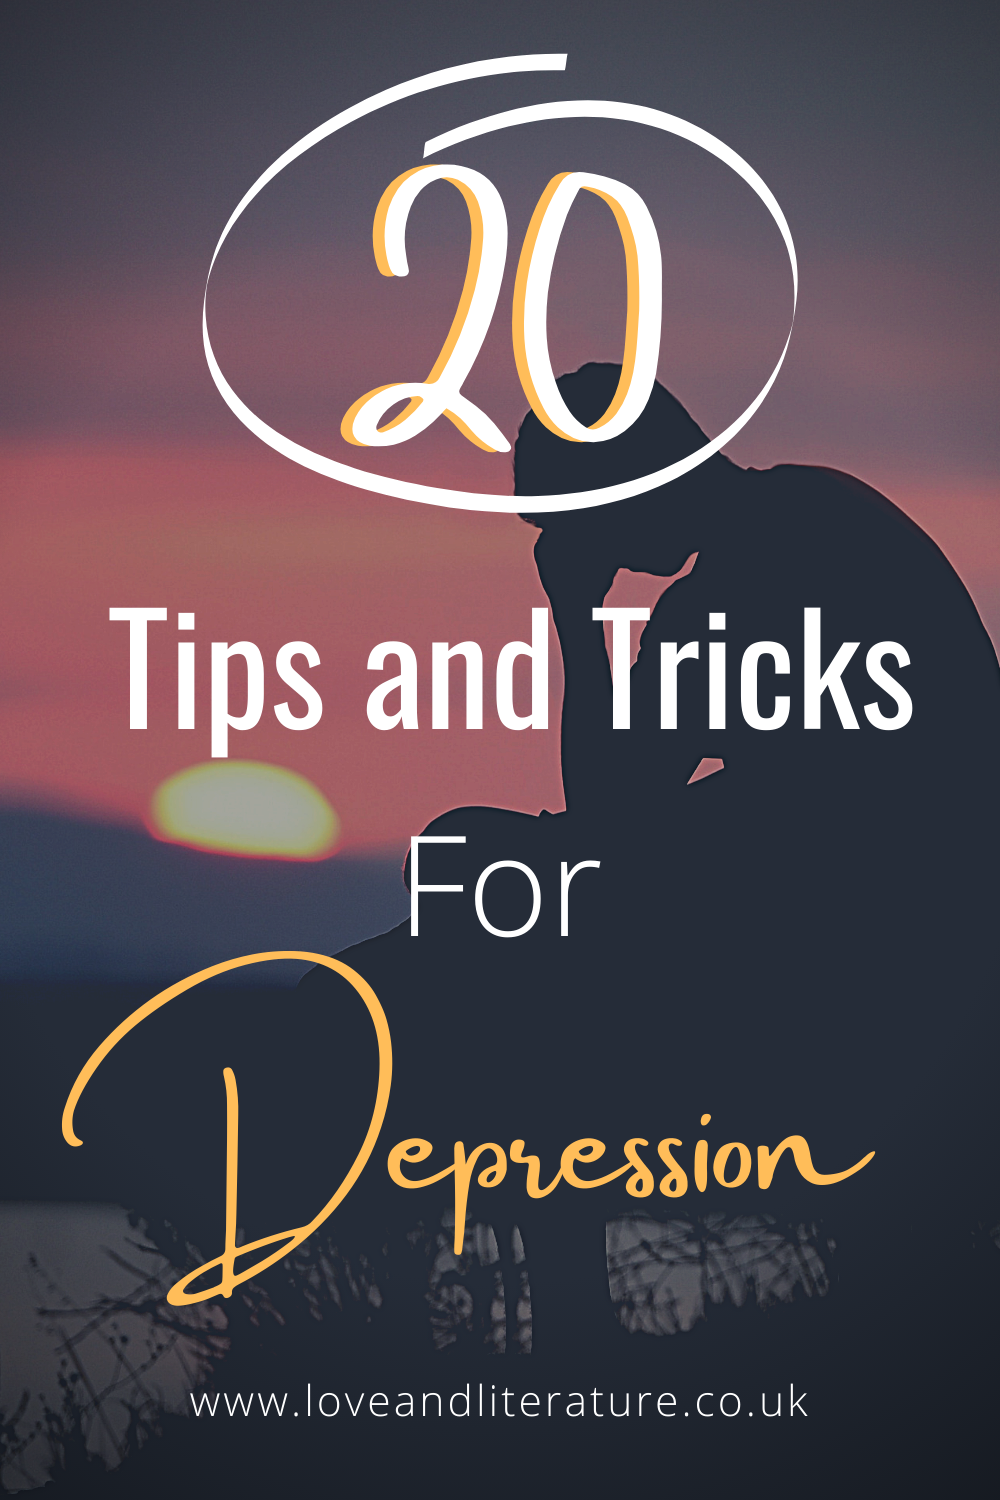 20 Tips and Tricks for Depression Pin